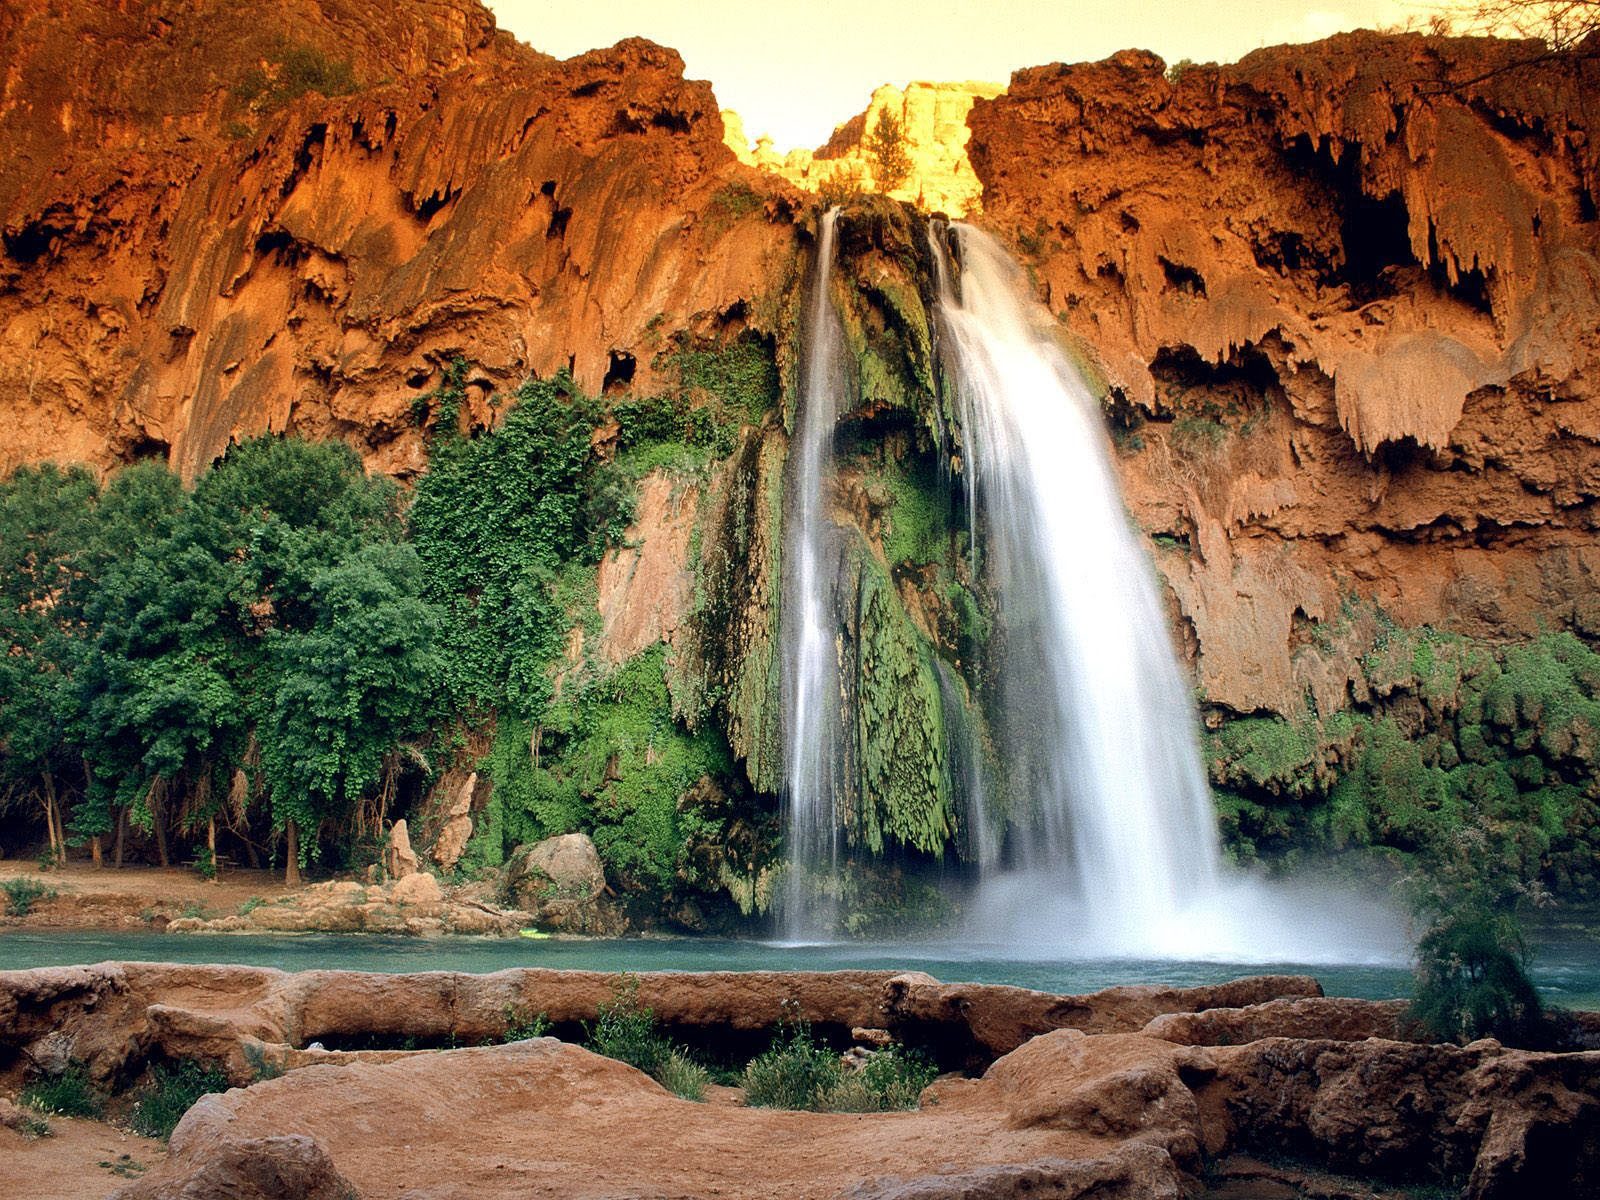 sabino canyon trail map with Waterfall Hd Wallpapers on Catalina Mountains Trail Maps CcC l90e277gNatLbfLPF3mdLcta6pqcXk14GOhwLyM further National monument together with Flames additionally 25716085605 together with Waterfall Hd Wallpapers.